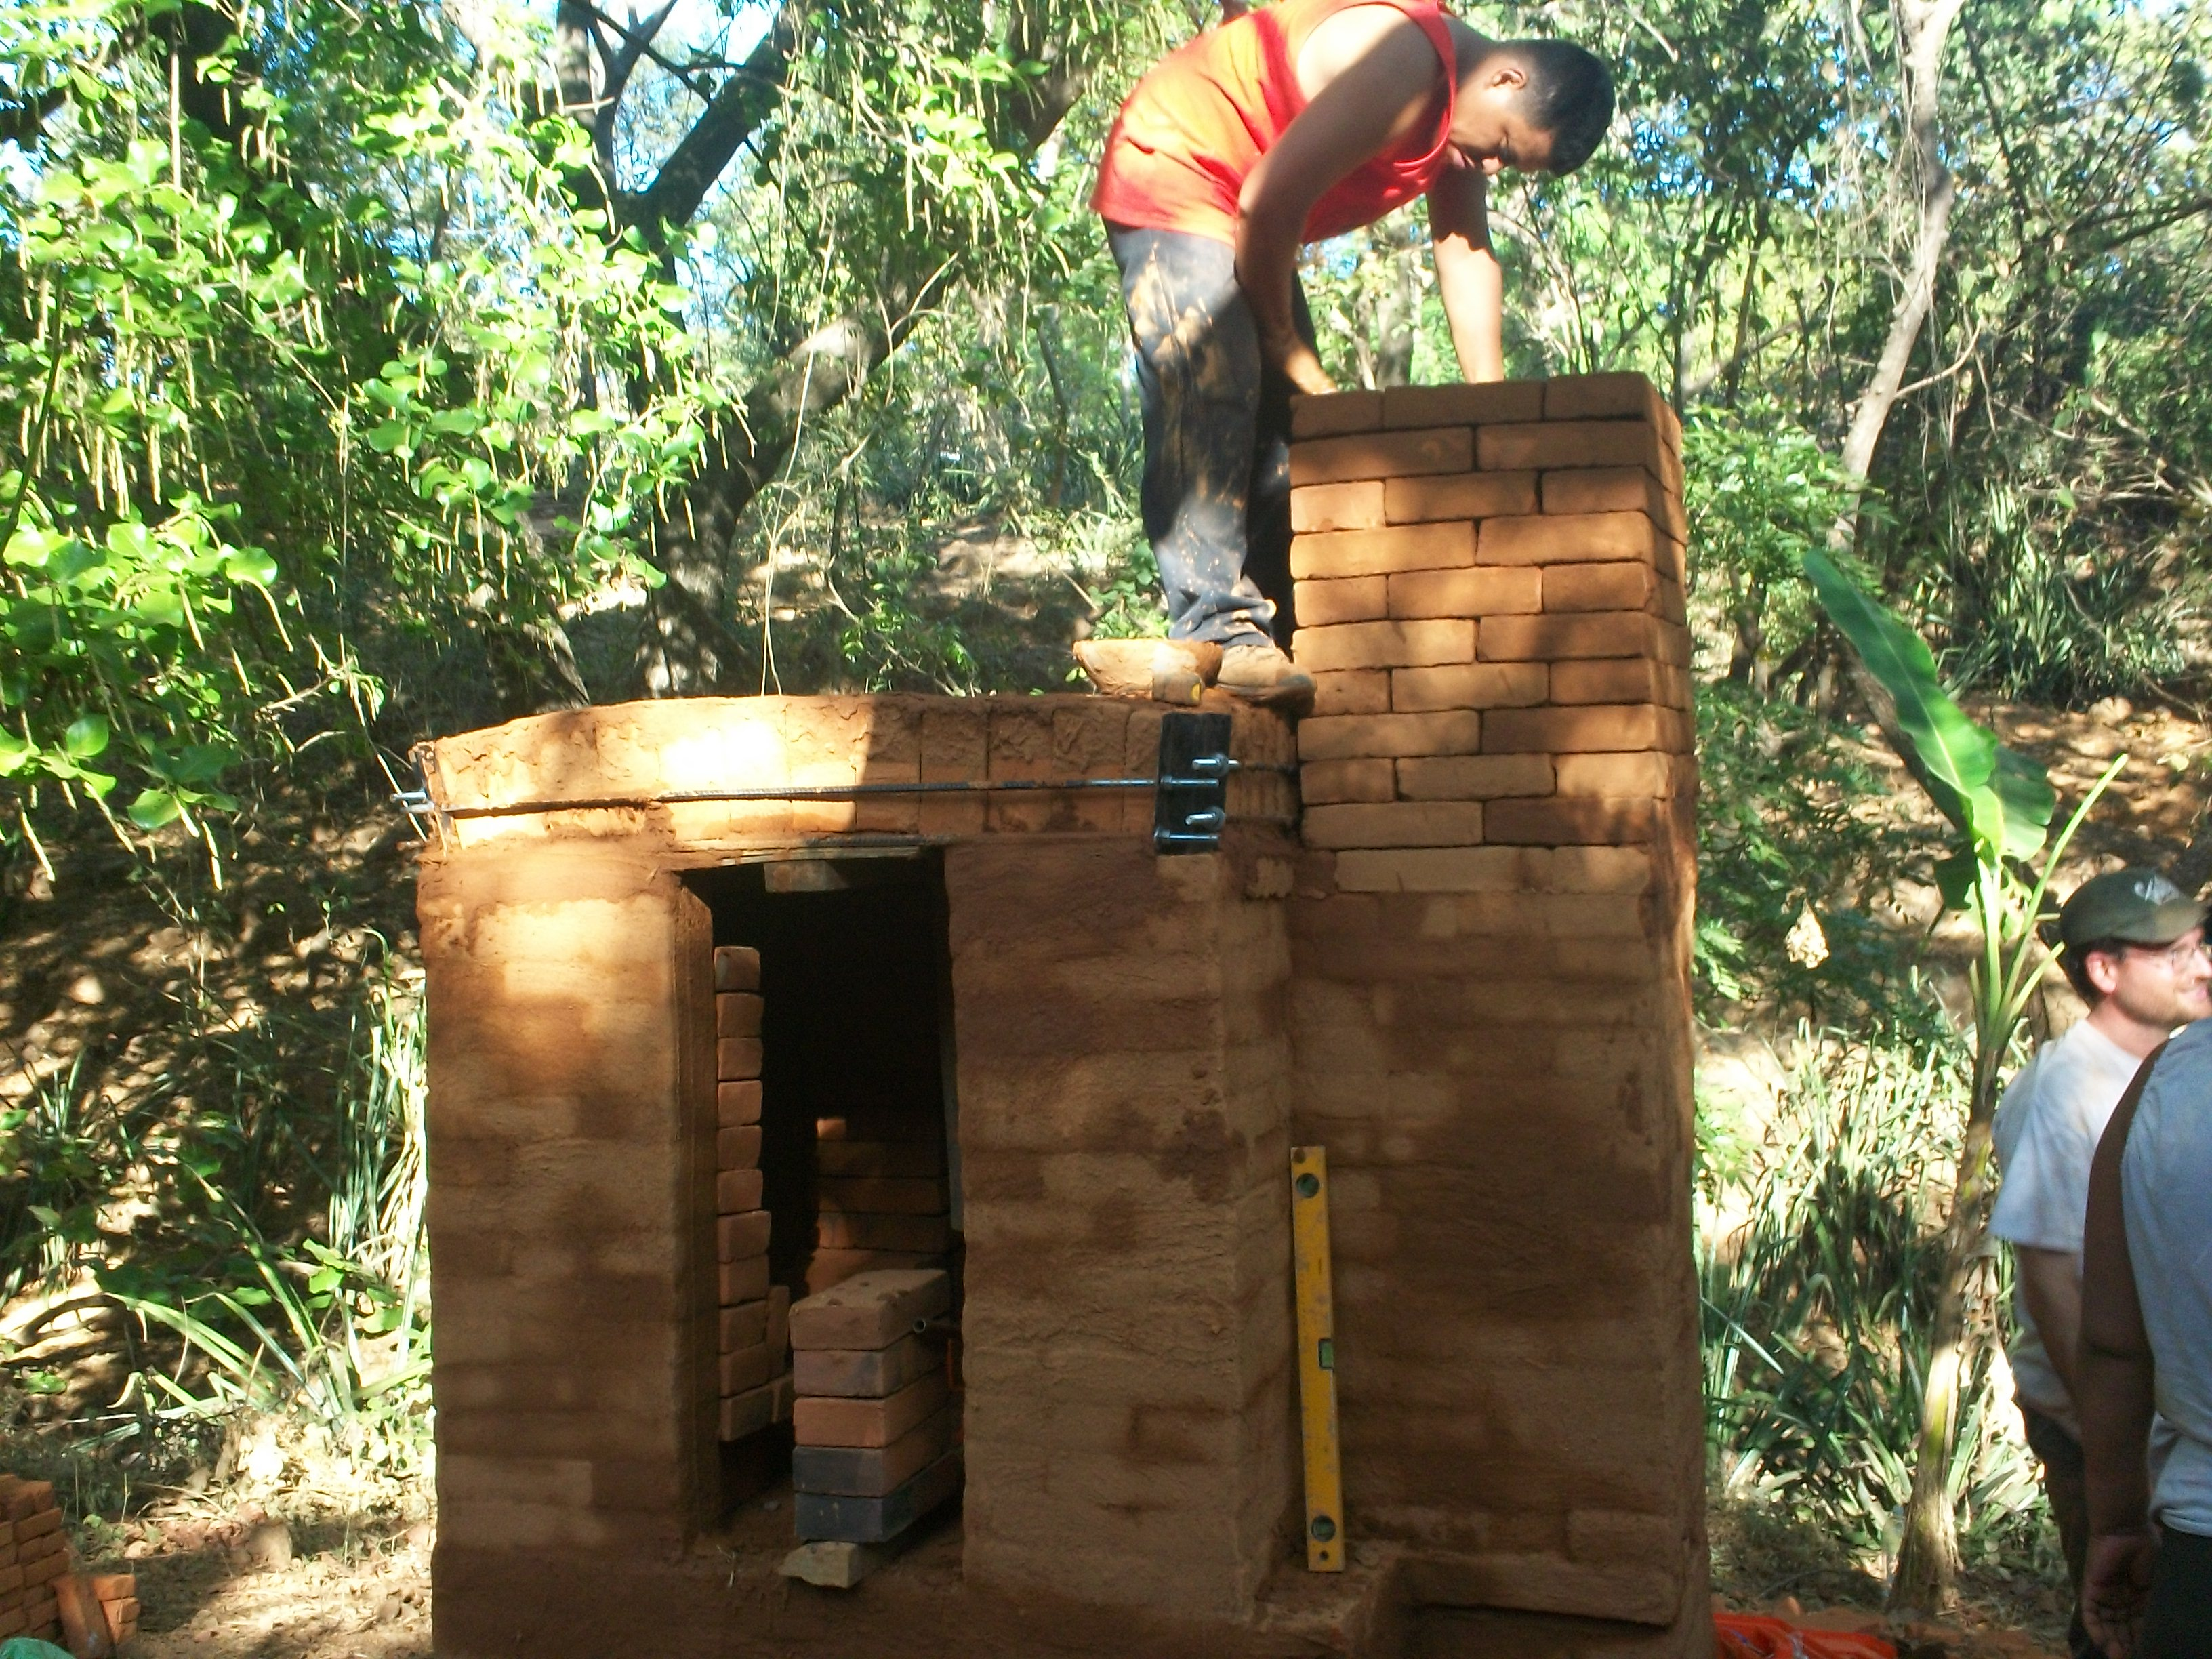 Alvaro makes the chimney